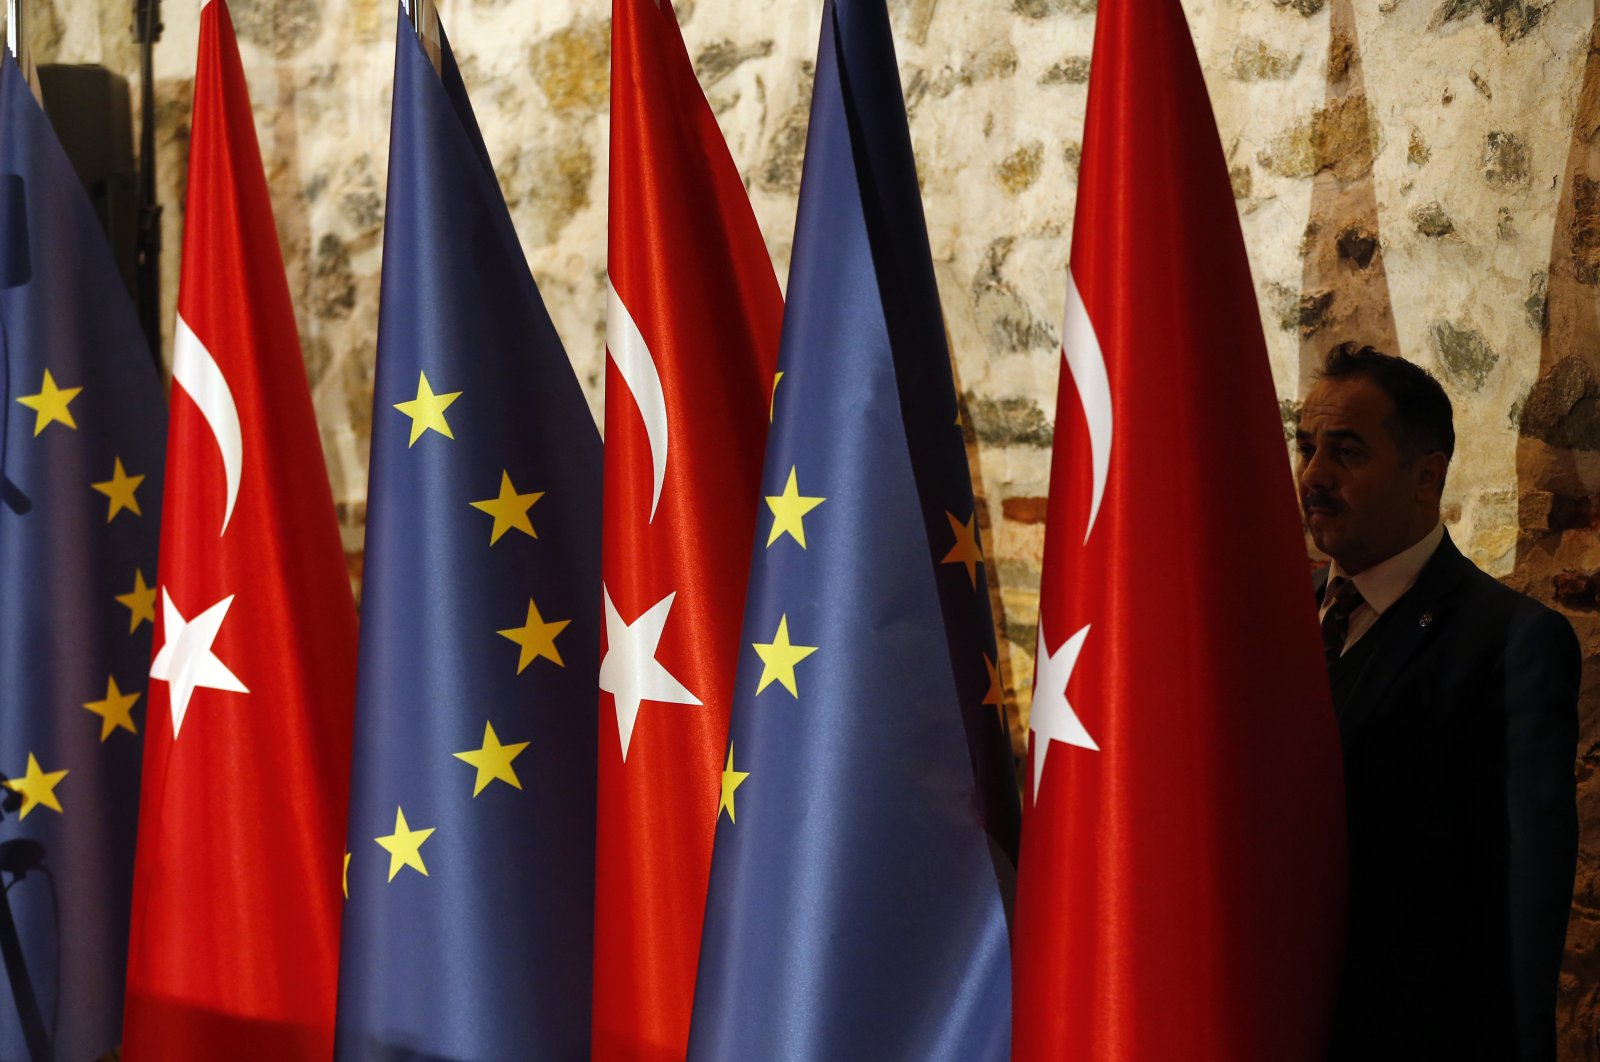 An official adjusts Turkey's and the European Union flags prior to the opening session of a high-level meeting between EU and Turkey, Istanbul, Feb. 28, 2019. (AP Photo)